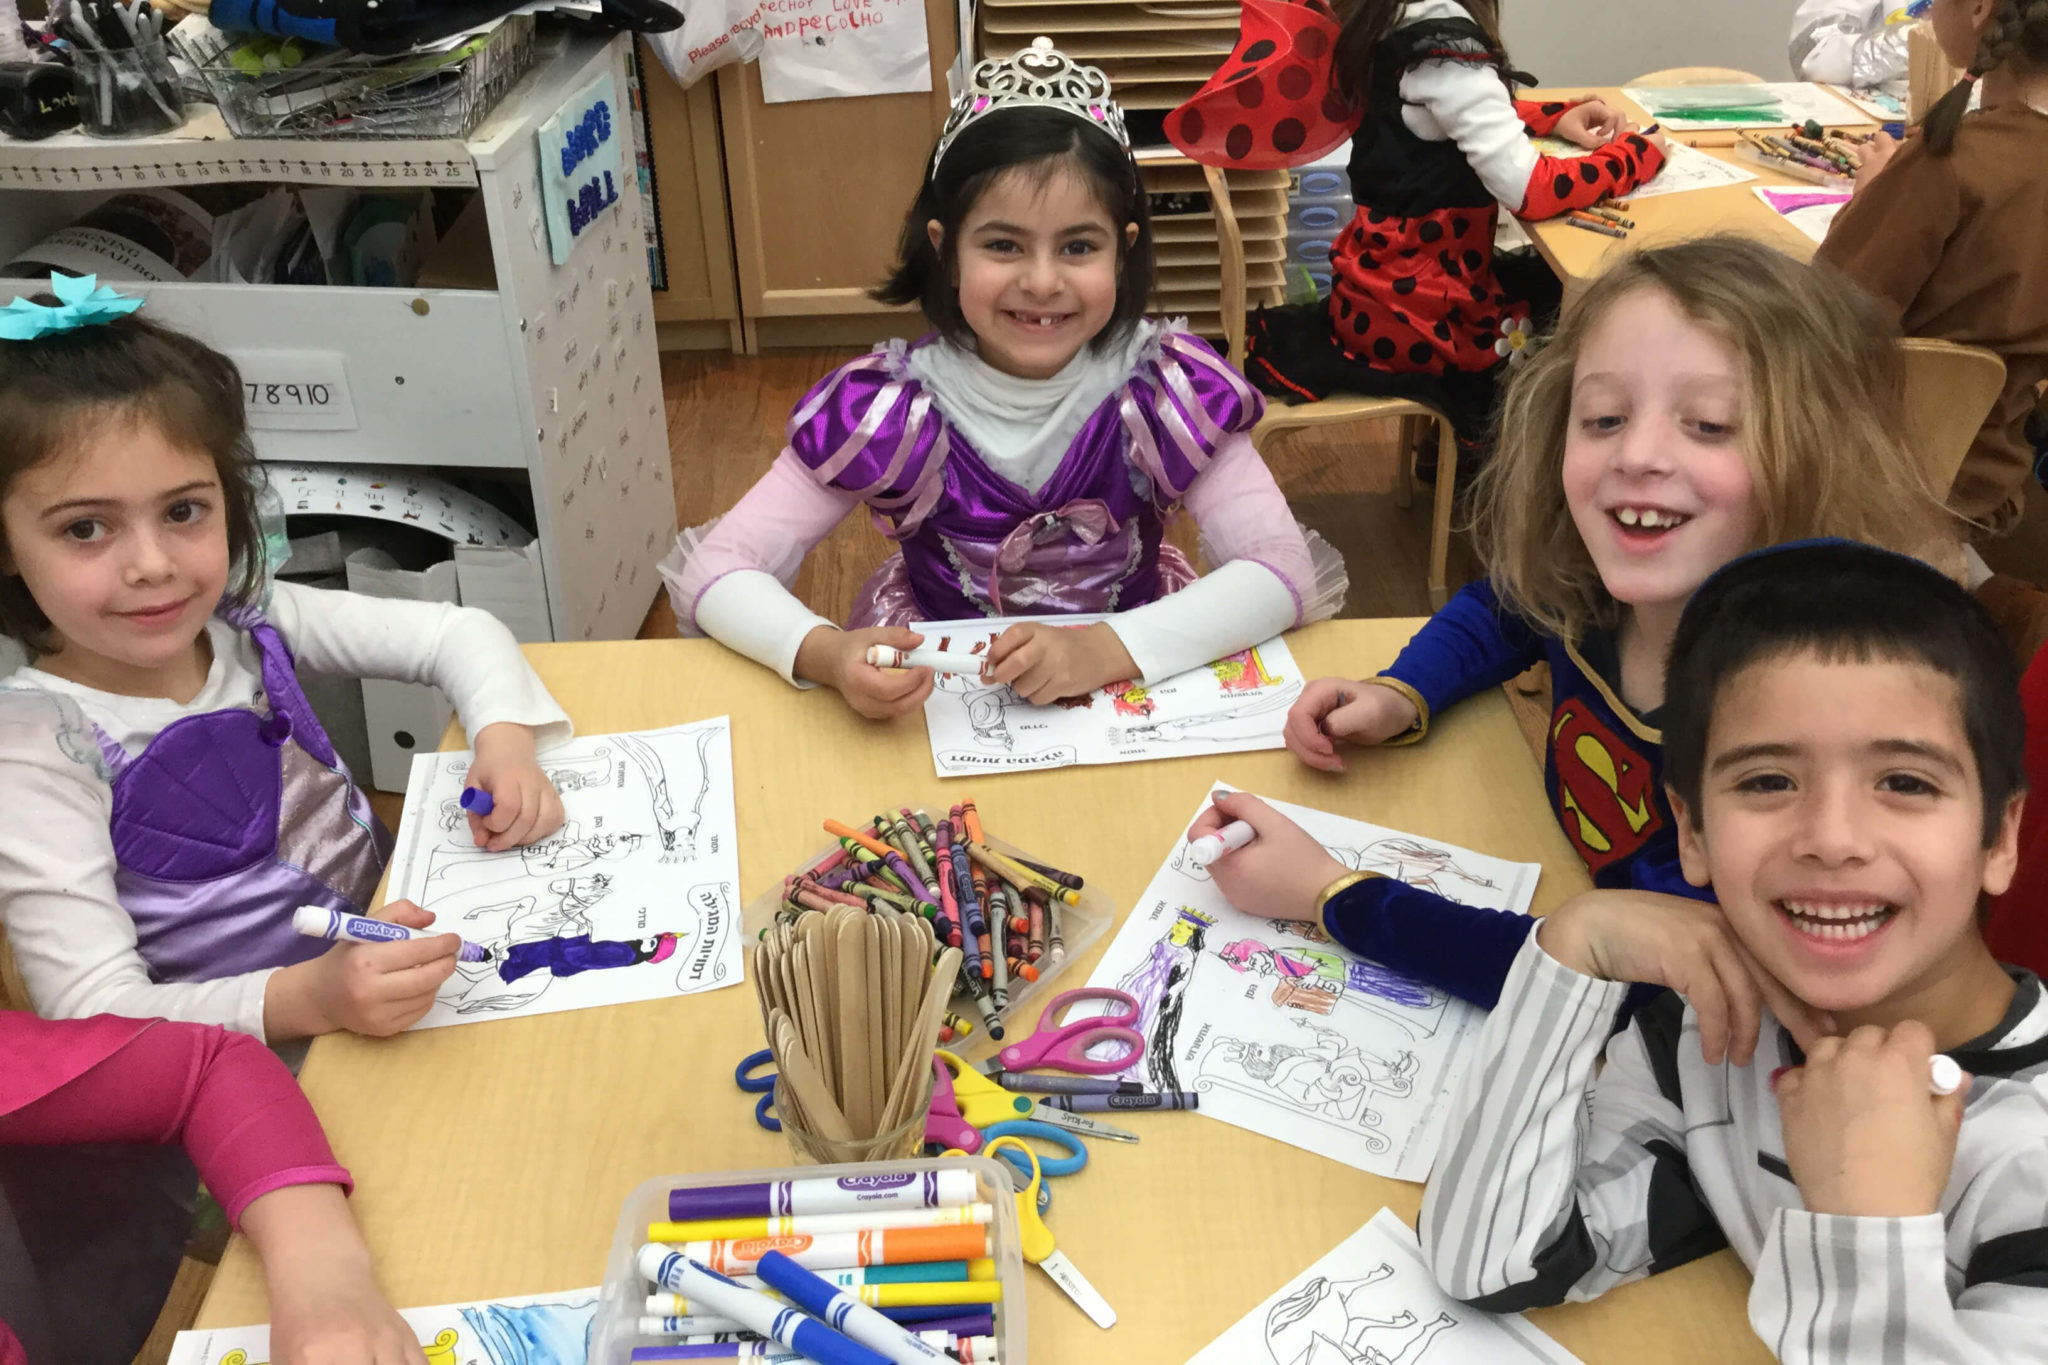 A princess and Supergirl work on Purim-themed arts and crafts at the South Campus Purim Carnival.